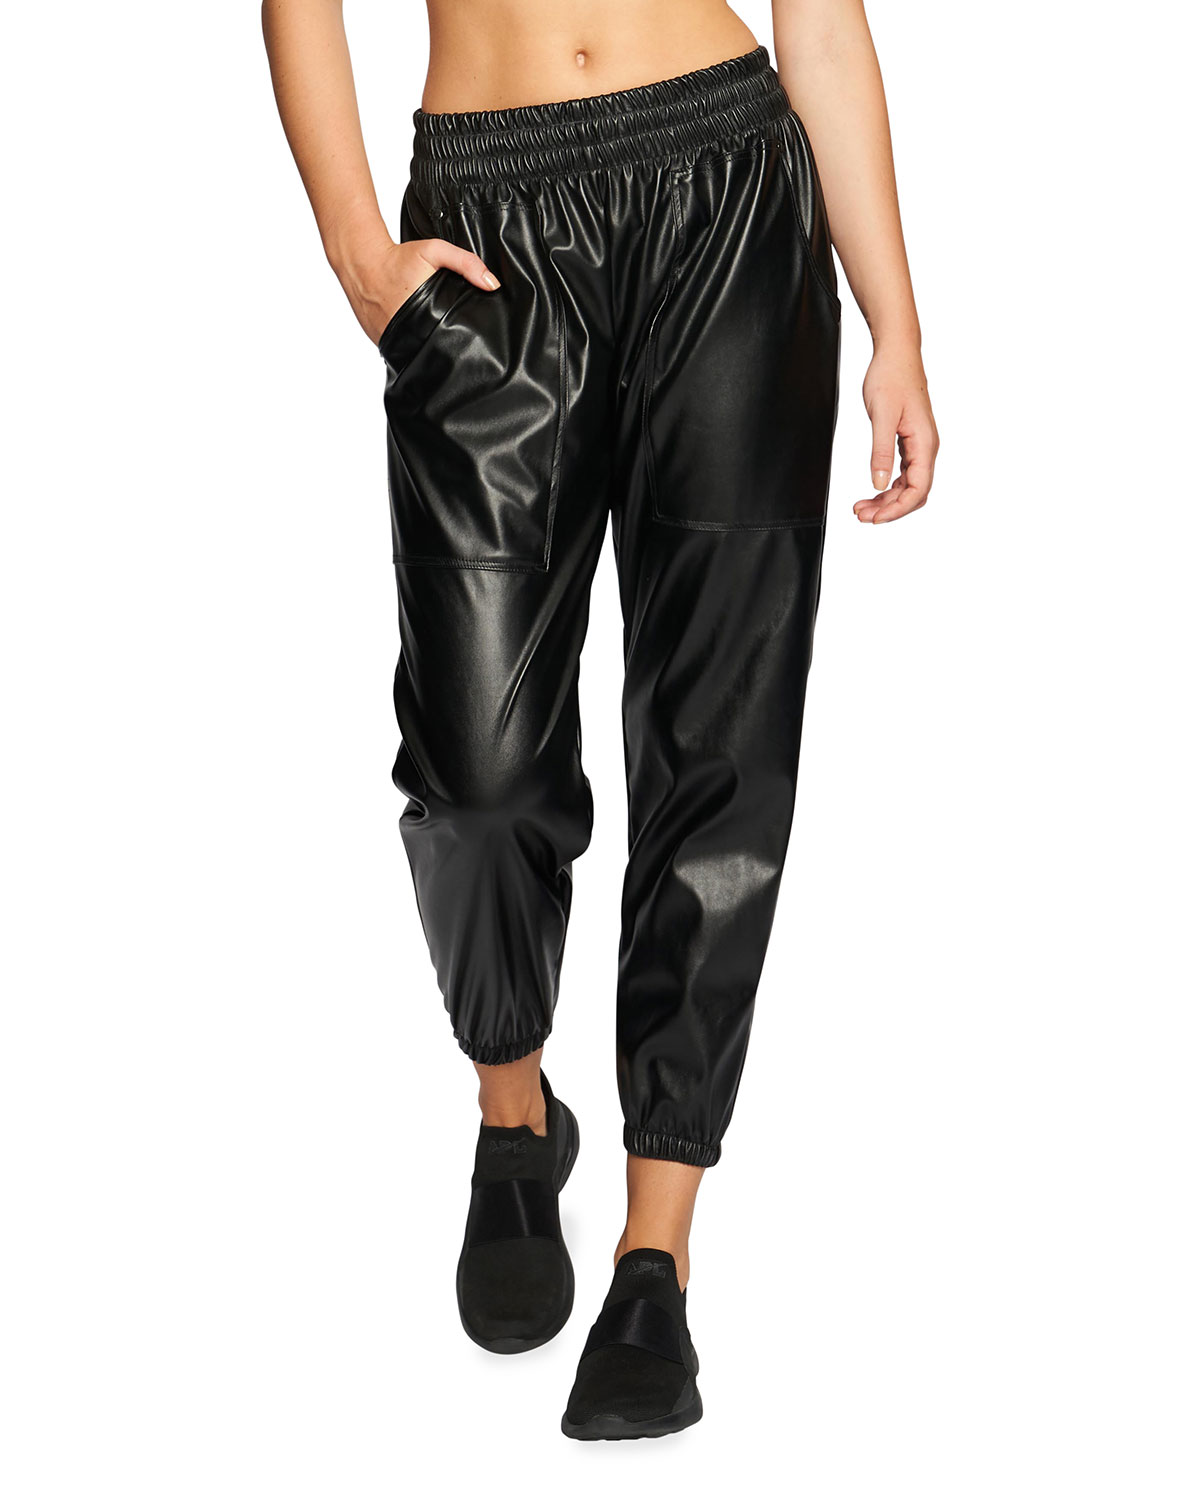 Heroine Sport Leathers FOUR-WAY PATENT FAUX-LEATHER JOGGERS